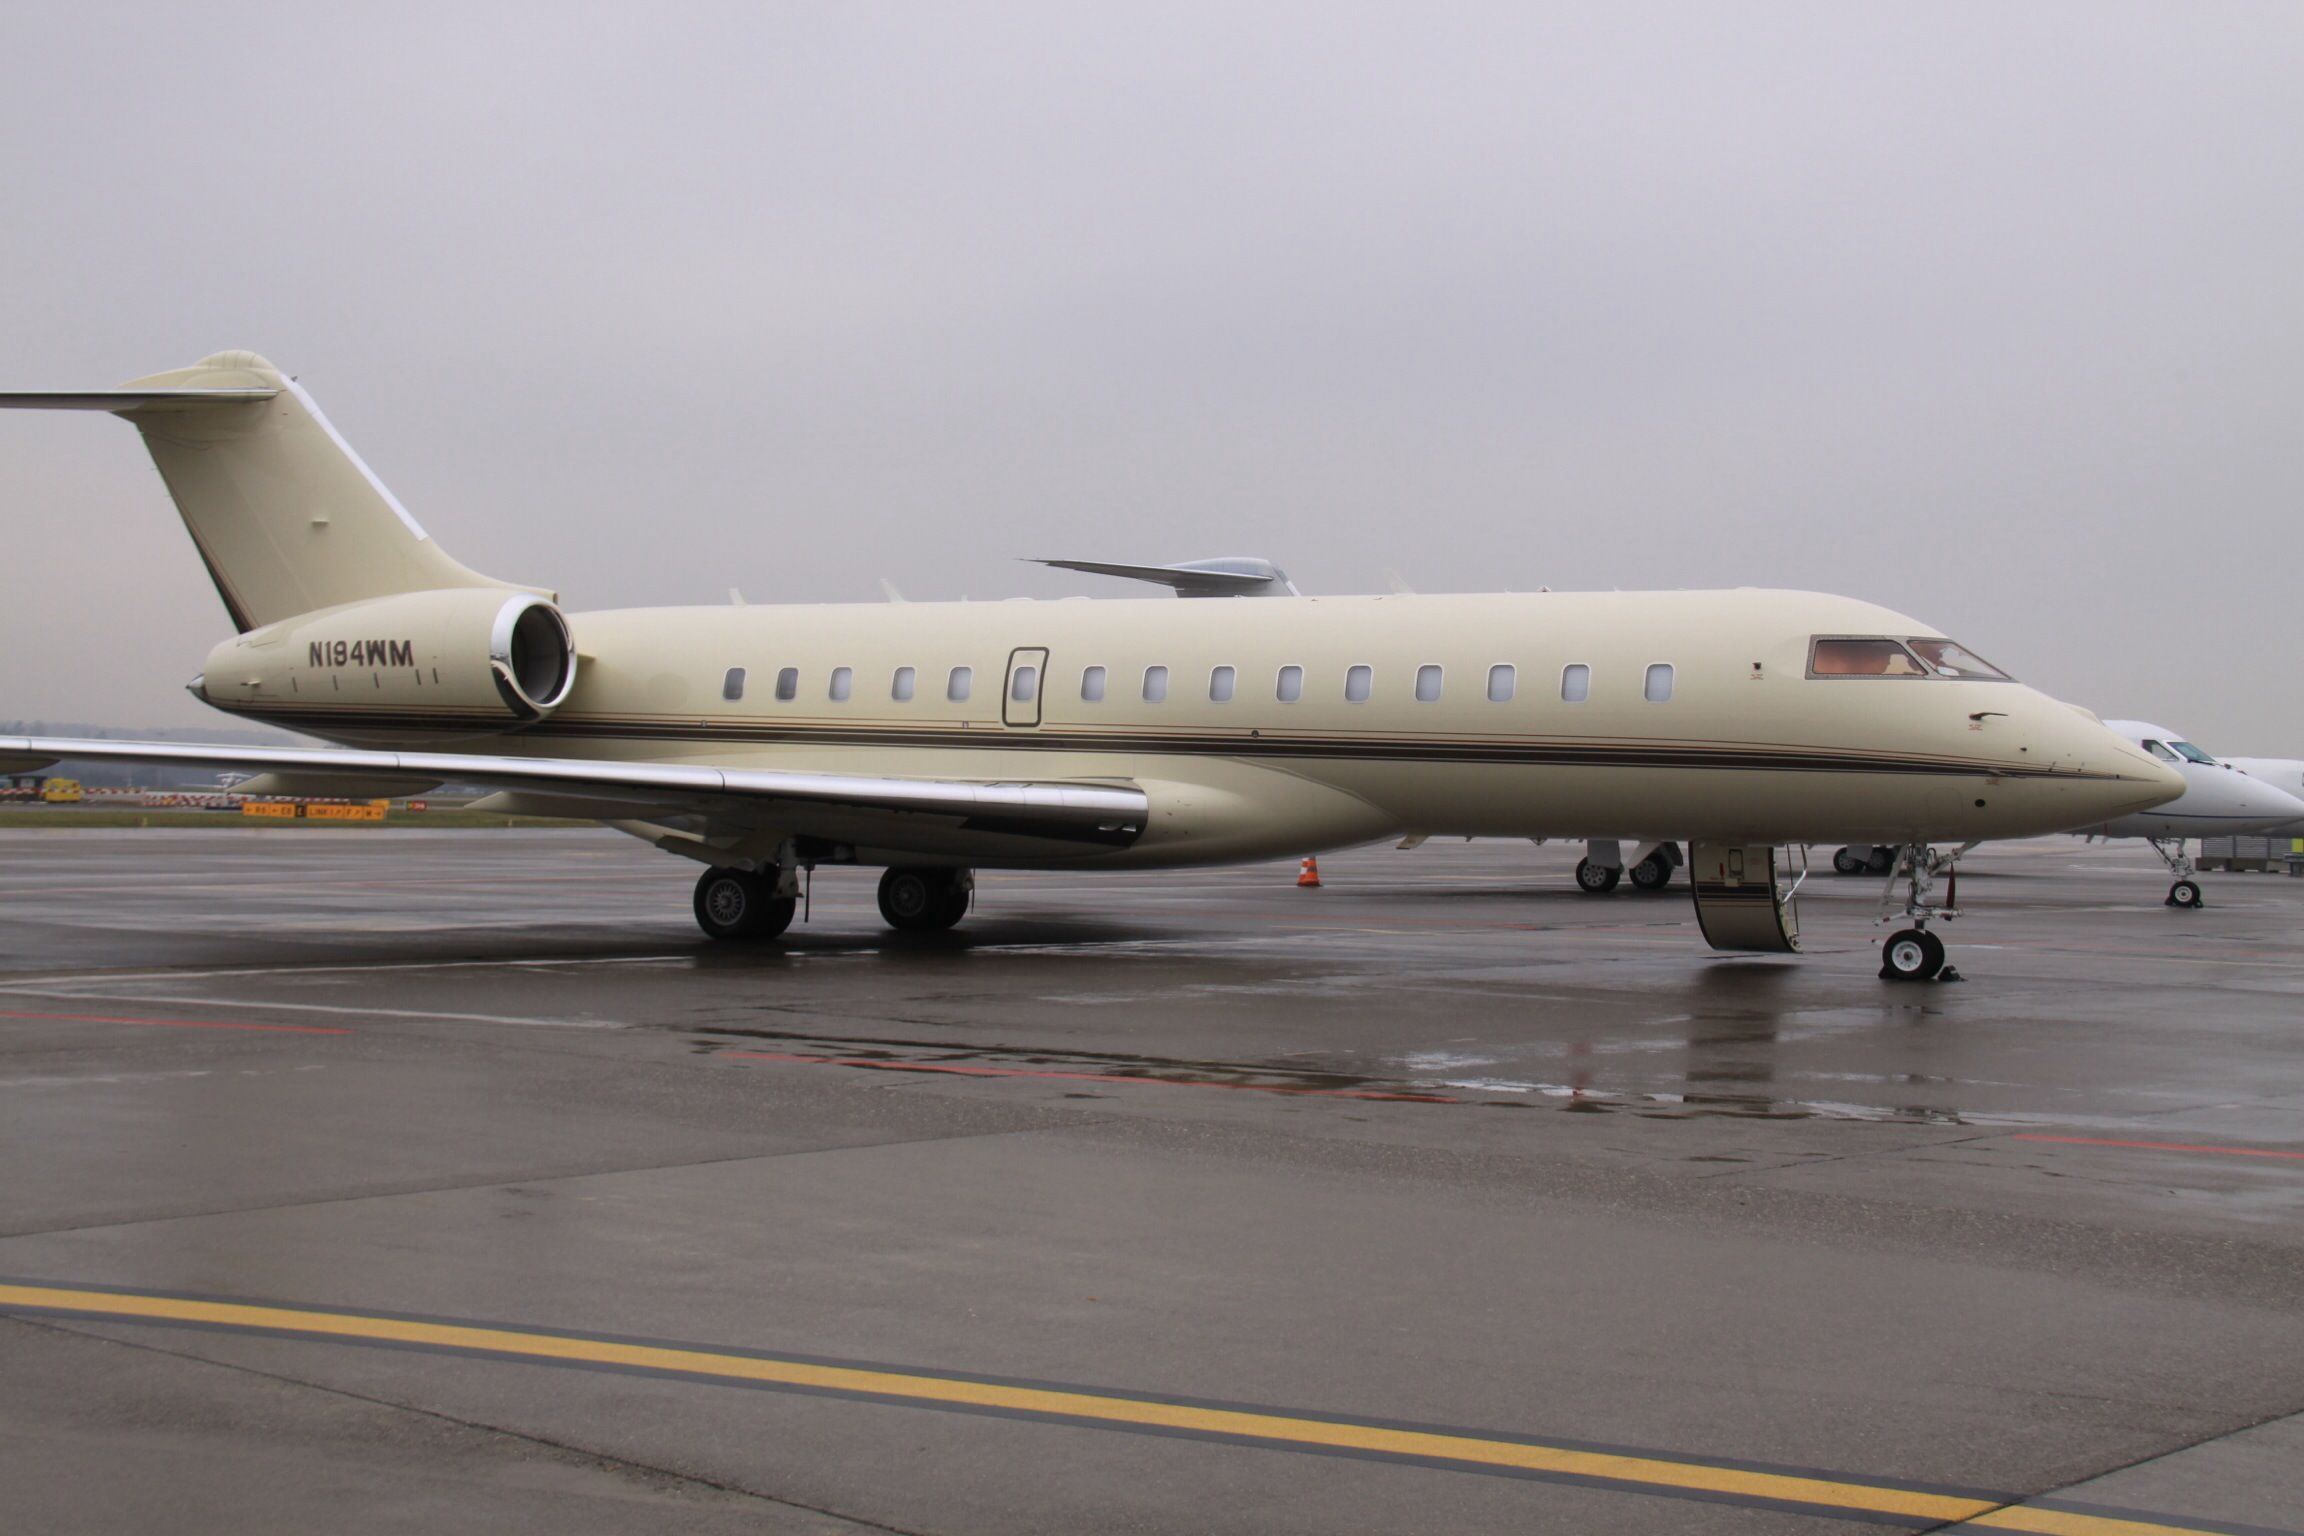 File:N194WM Bombardier Global Express (12675256503).jpg ...